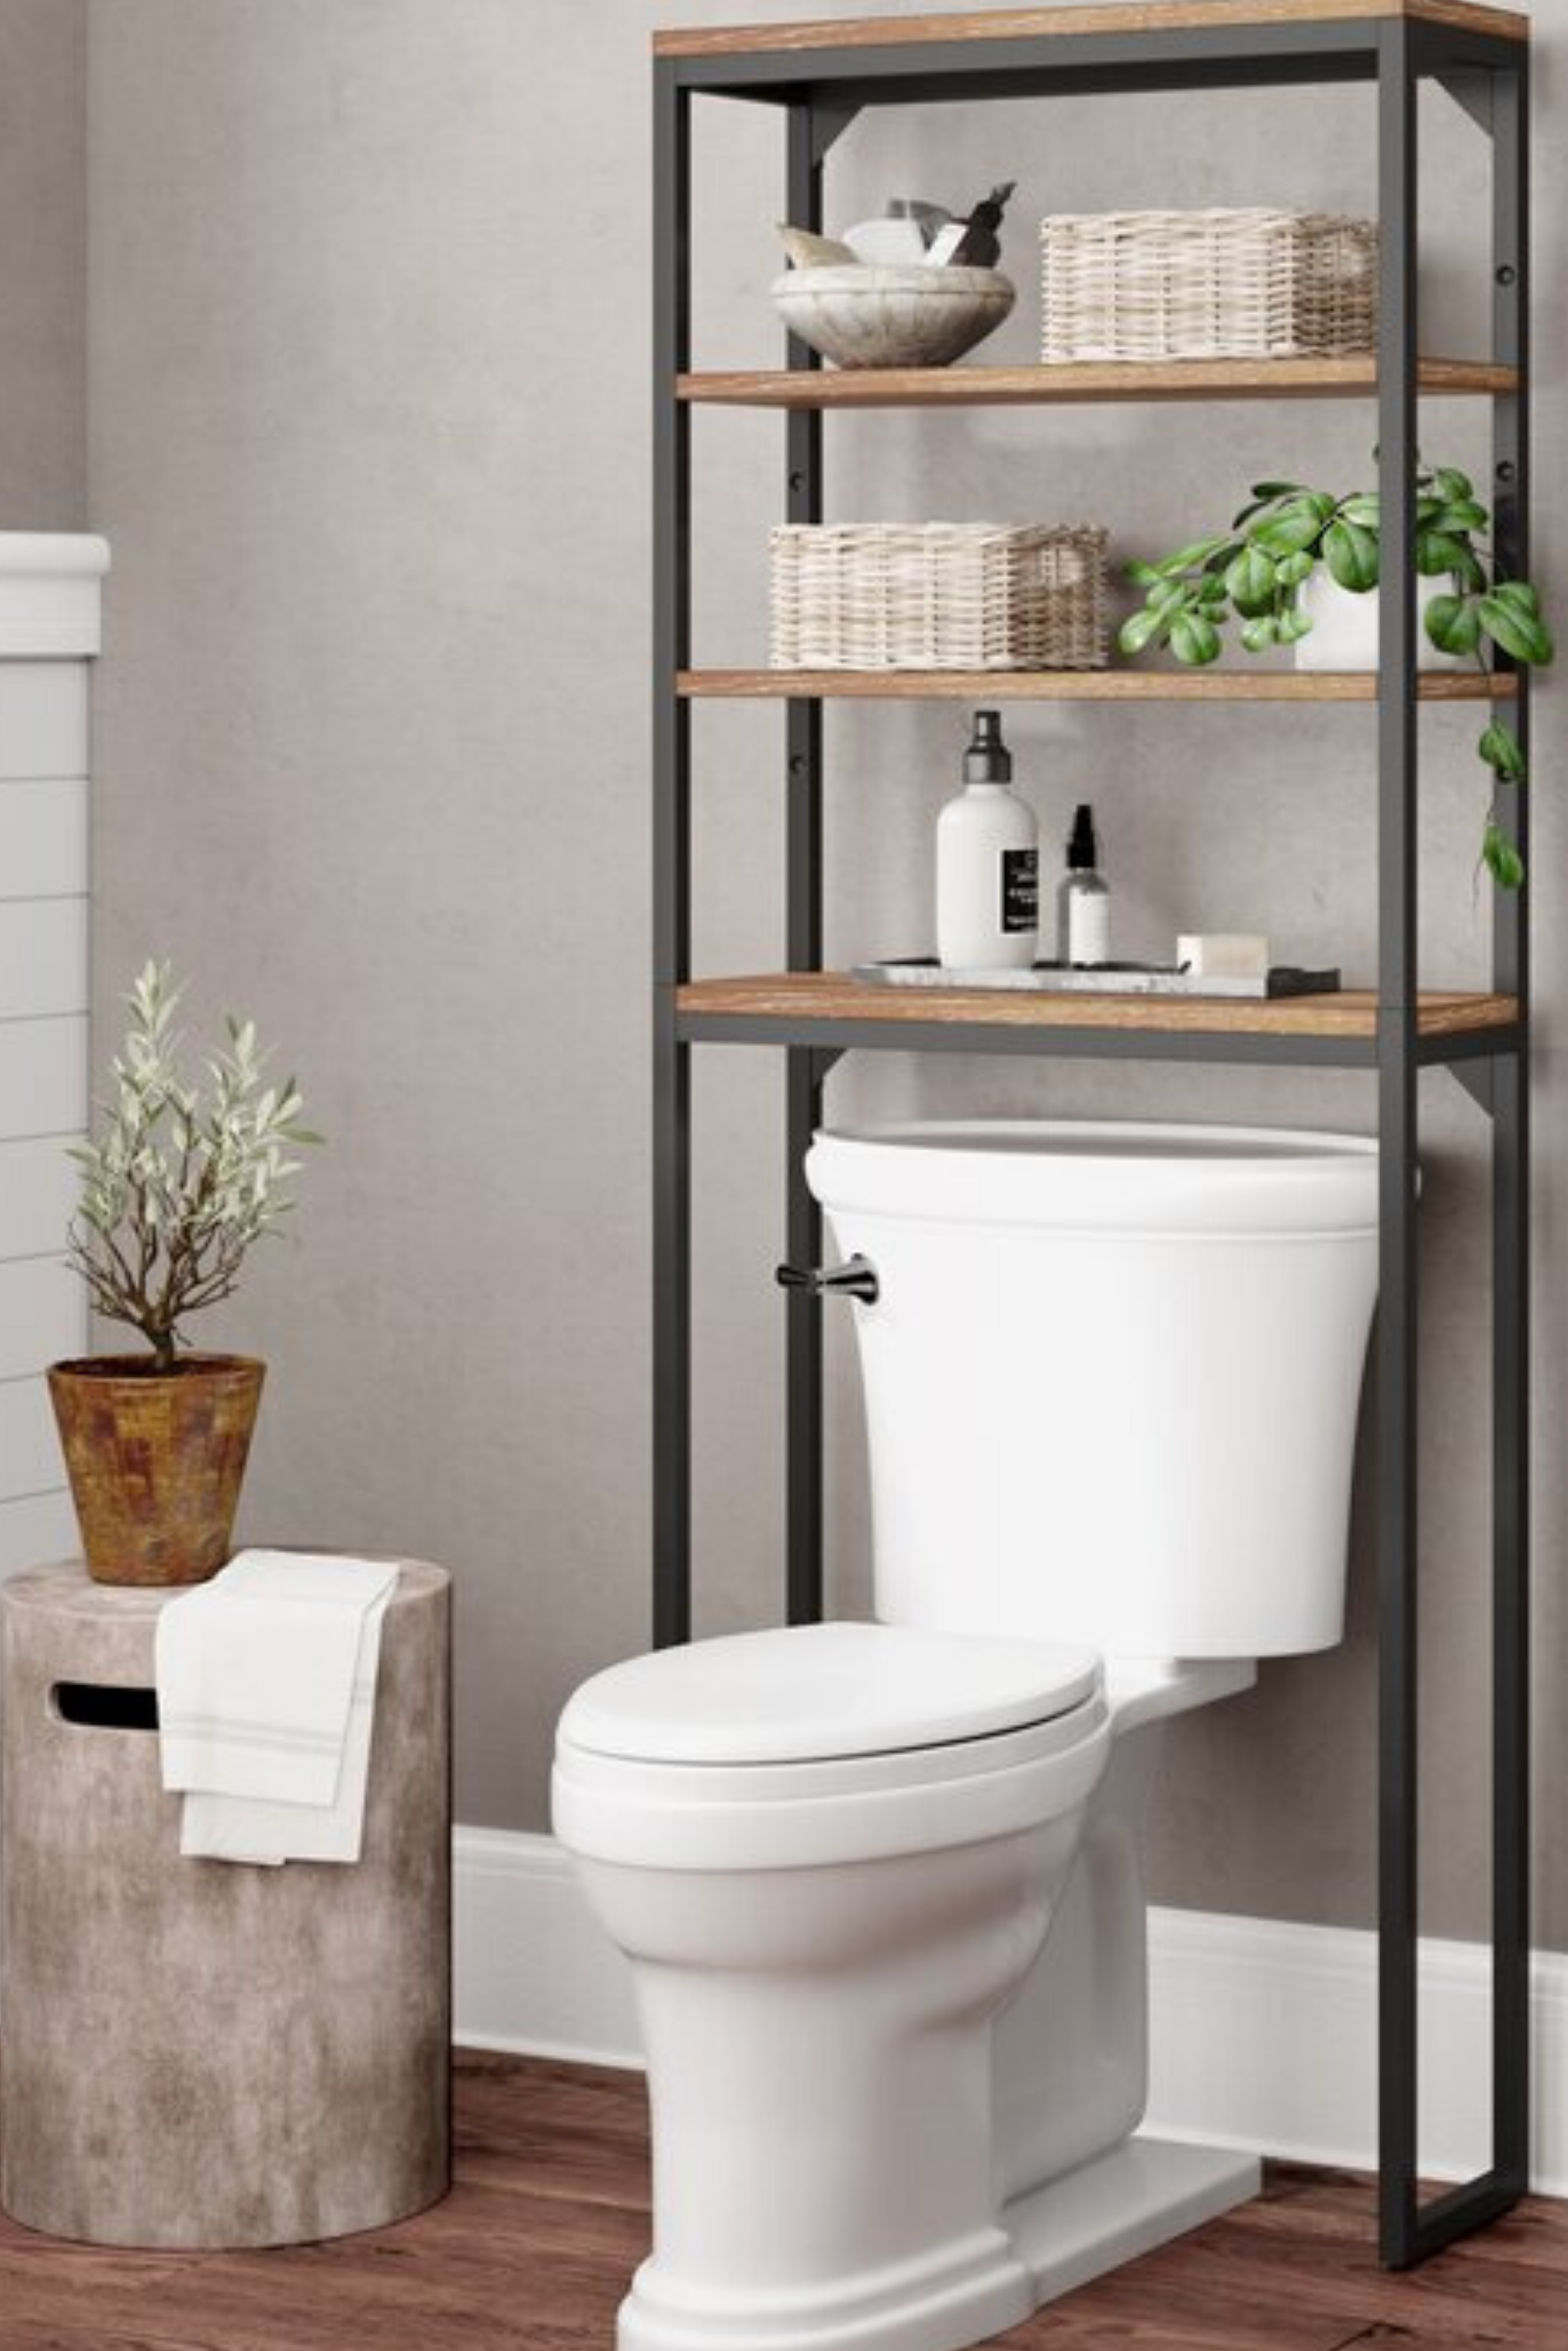 Finding Bathroom Storage For A Small